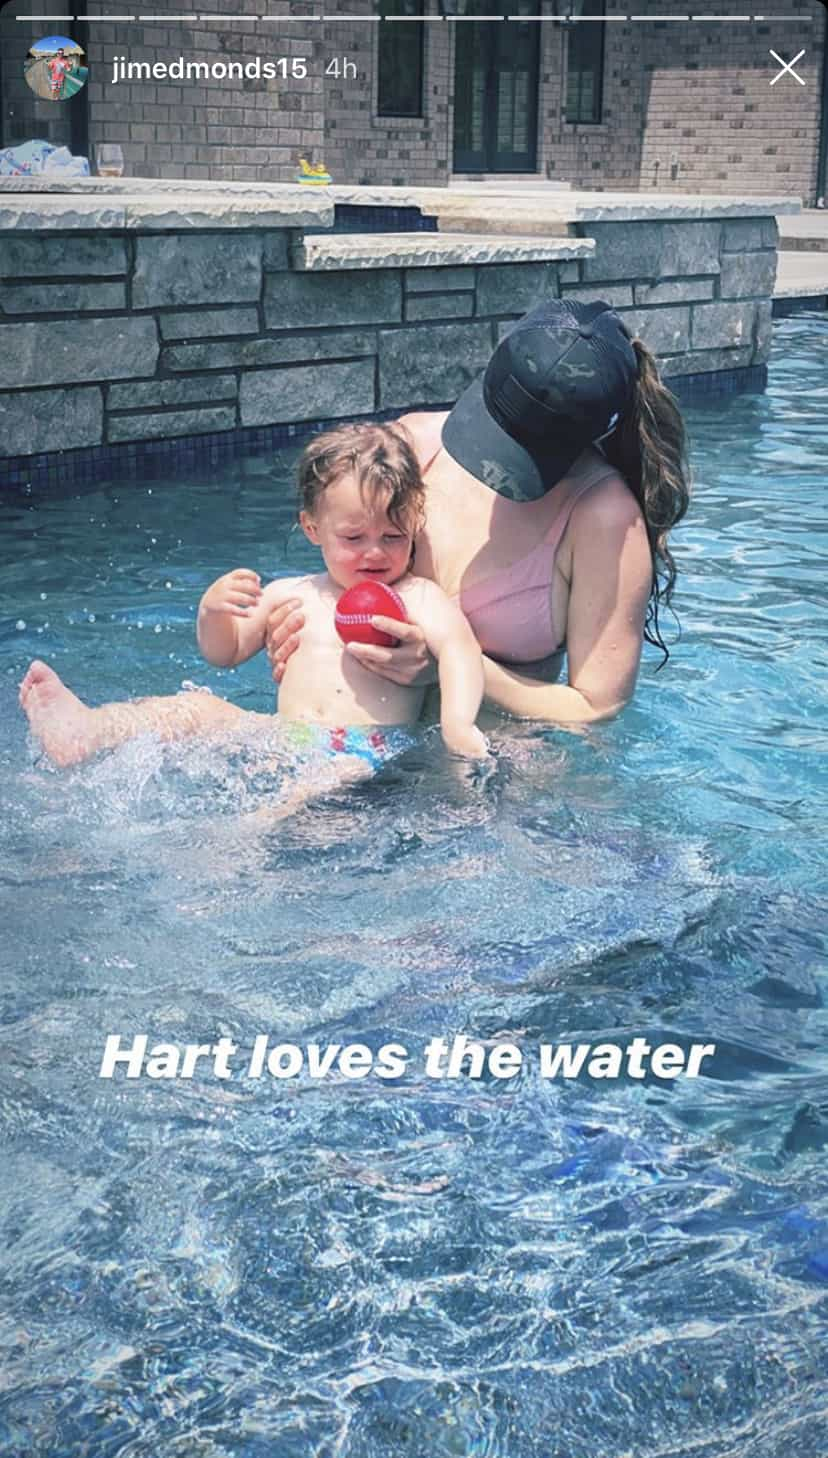 Kortnie O'Connor Holds Hart Edmonds in His Pool